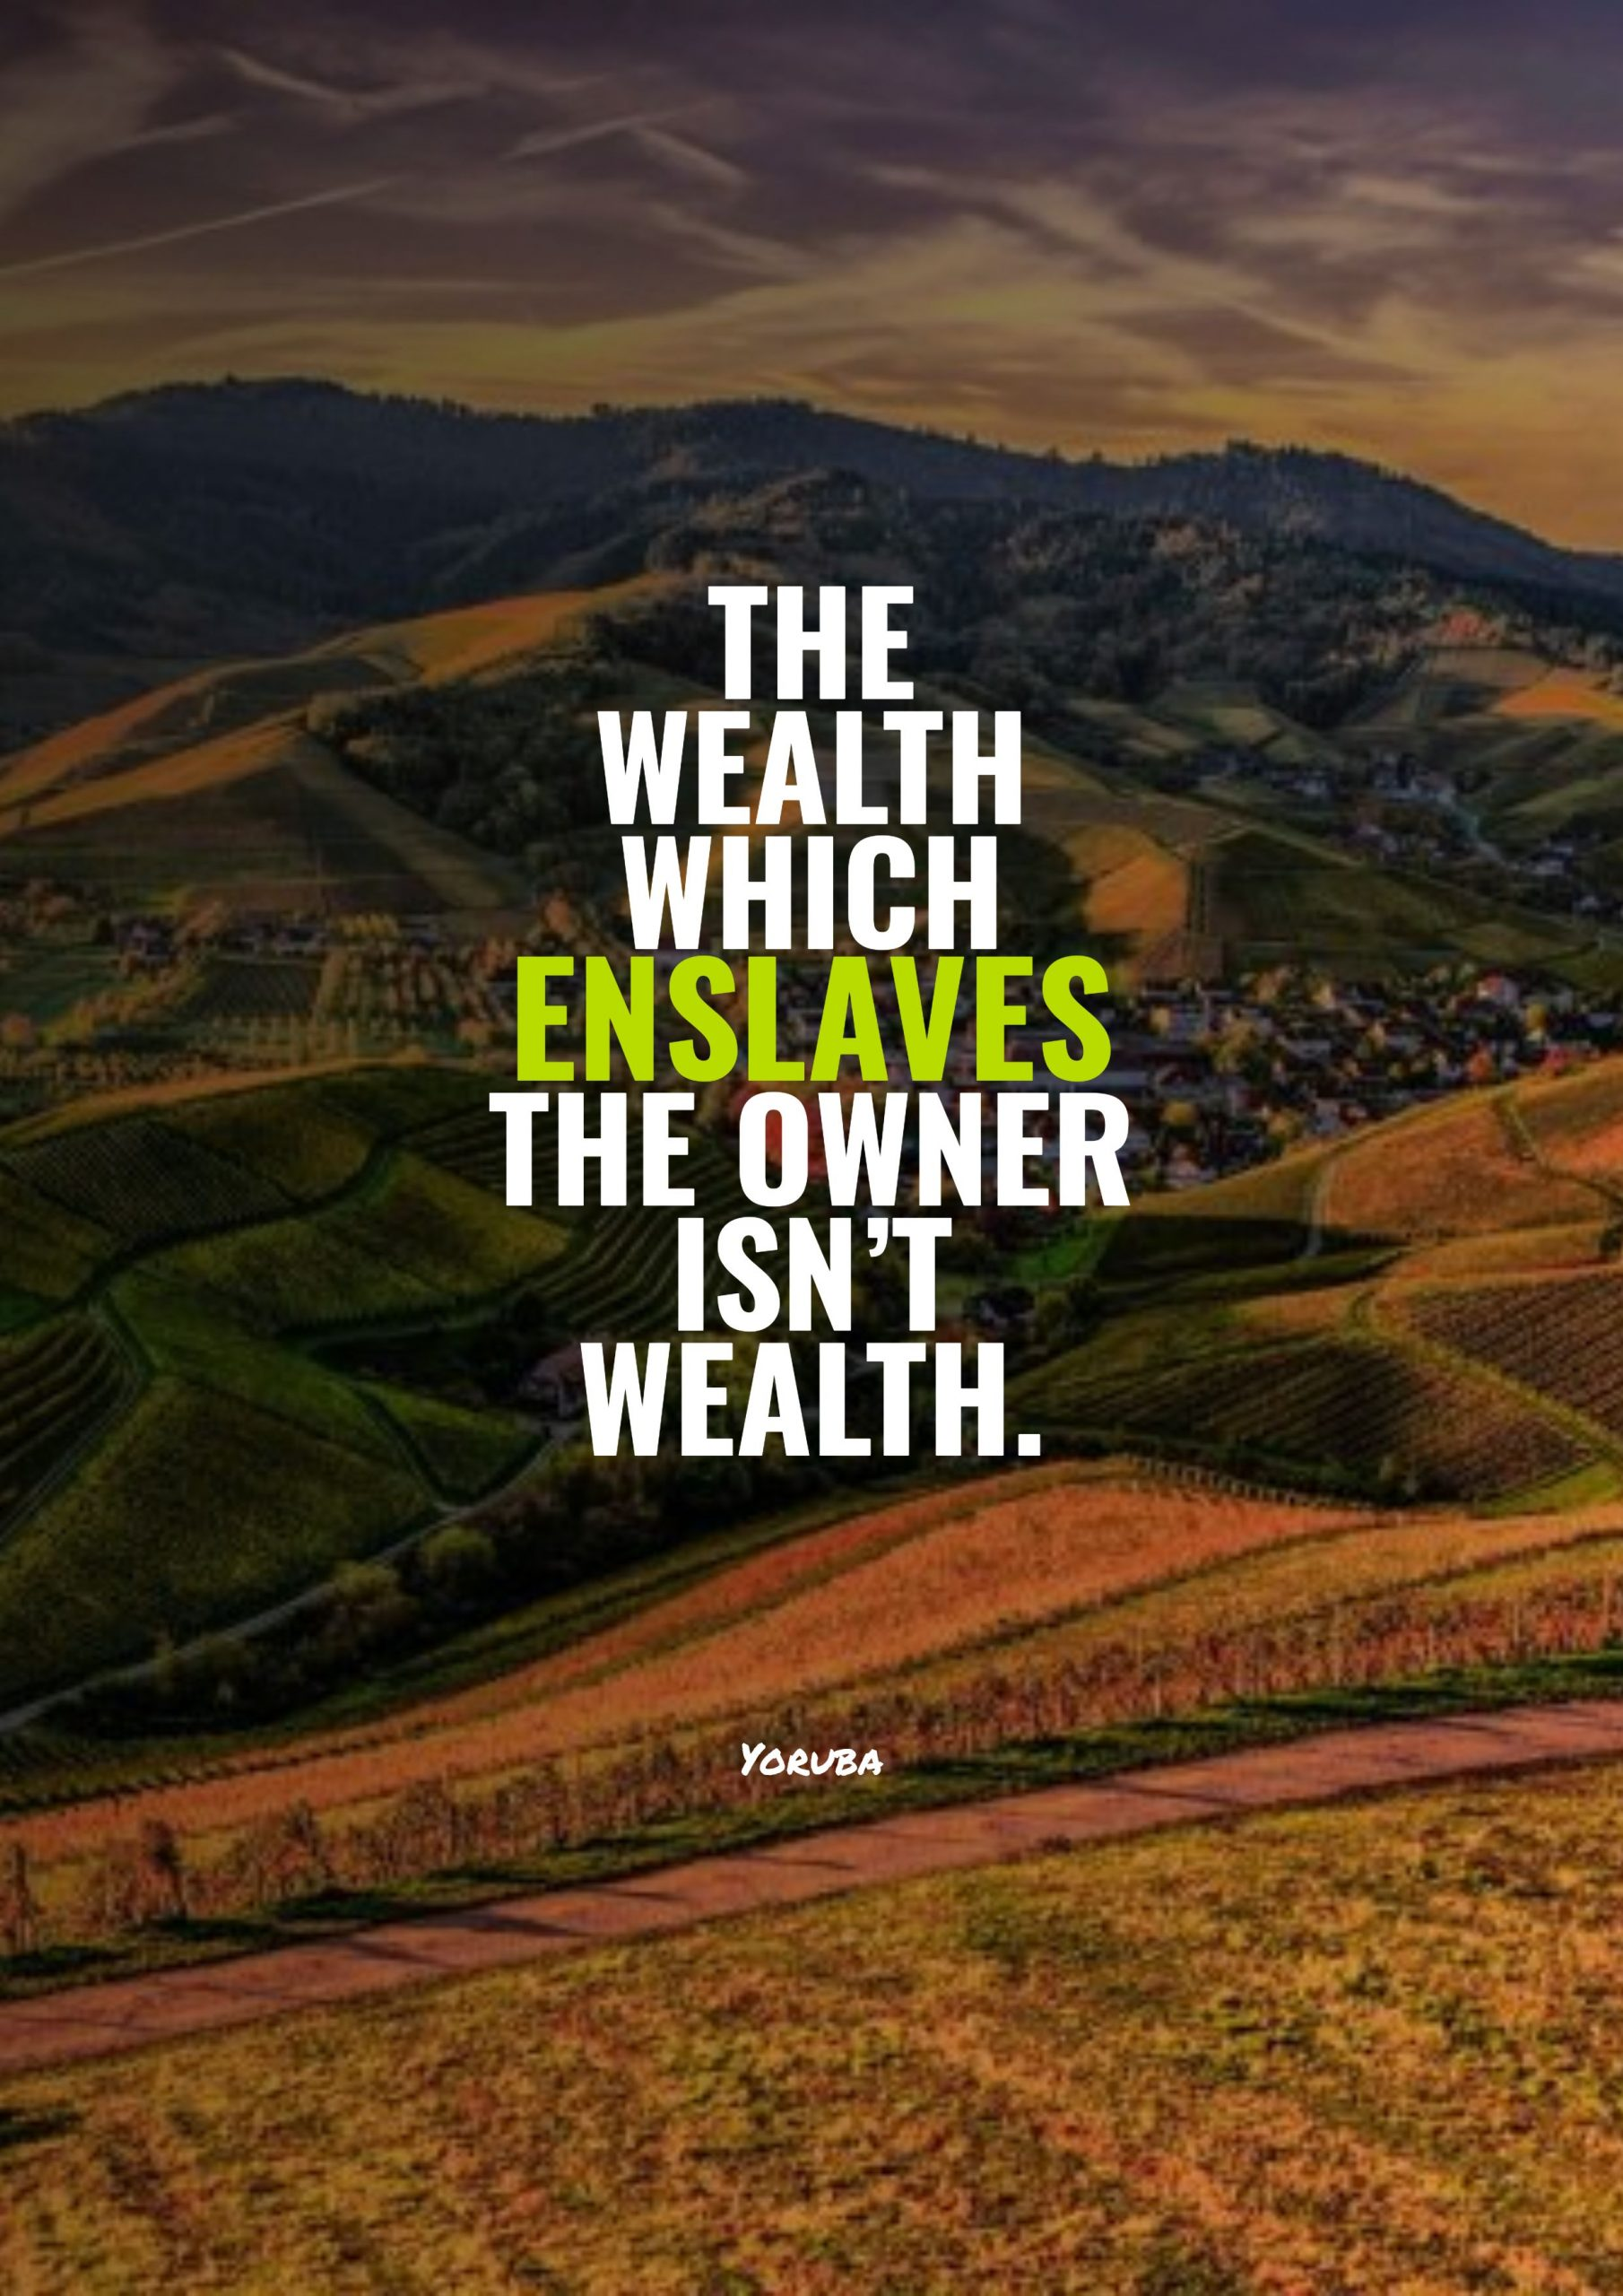 Quotes image of The wealth which enslaves the owner isn't wealth.